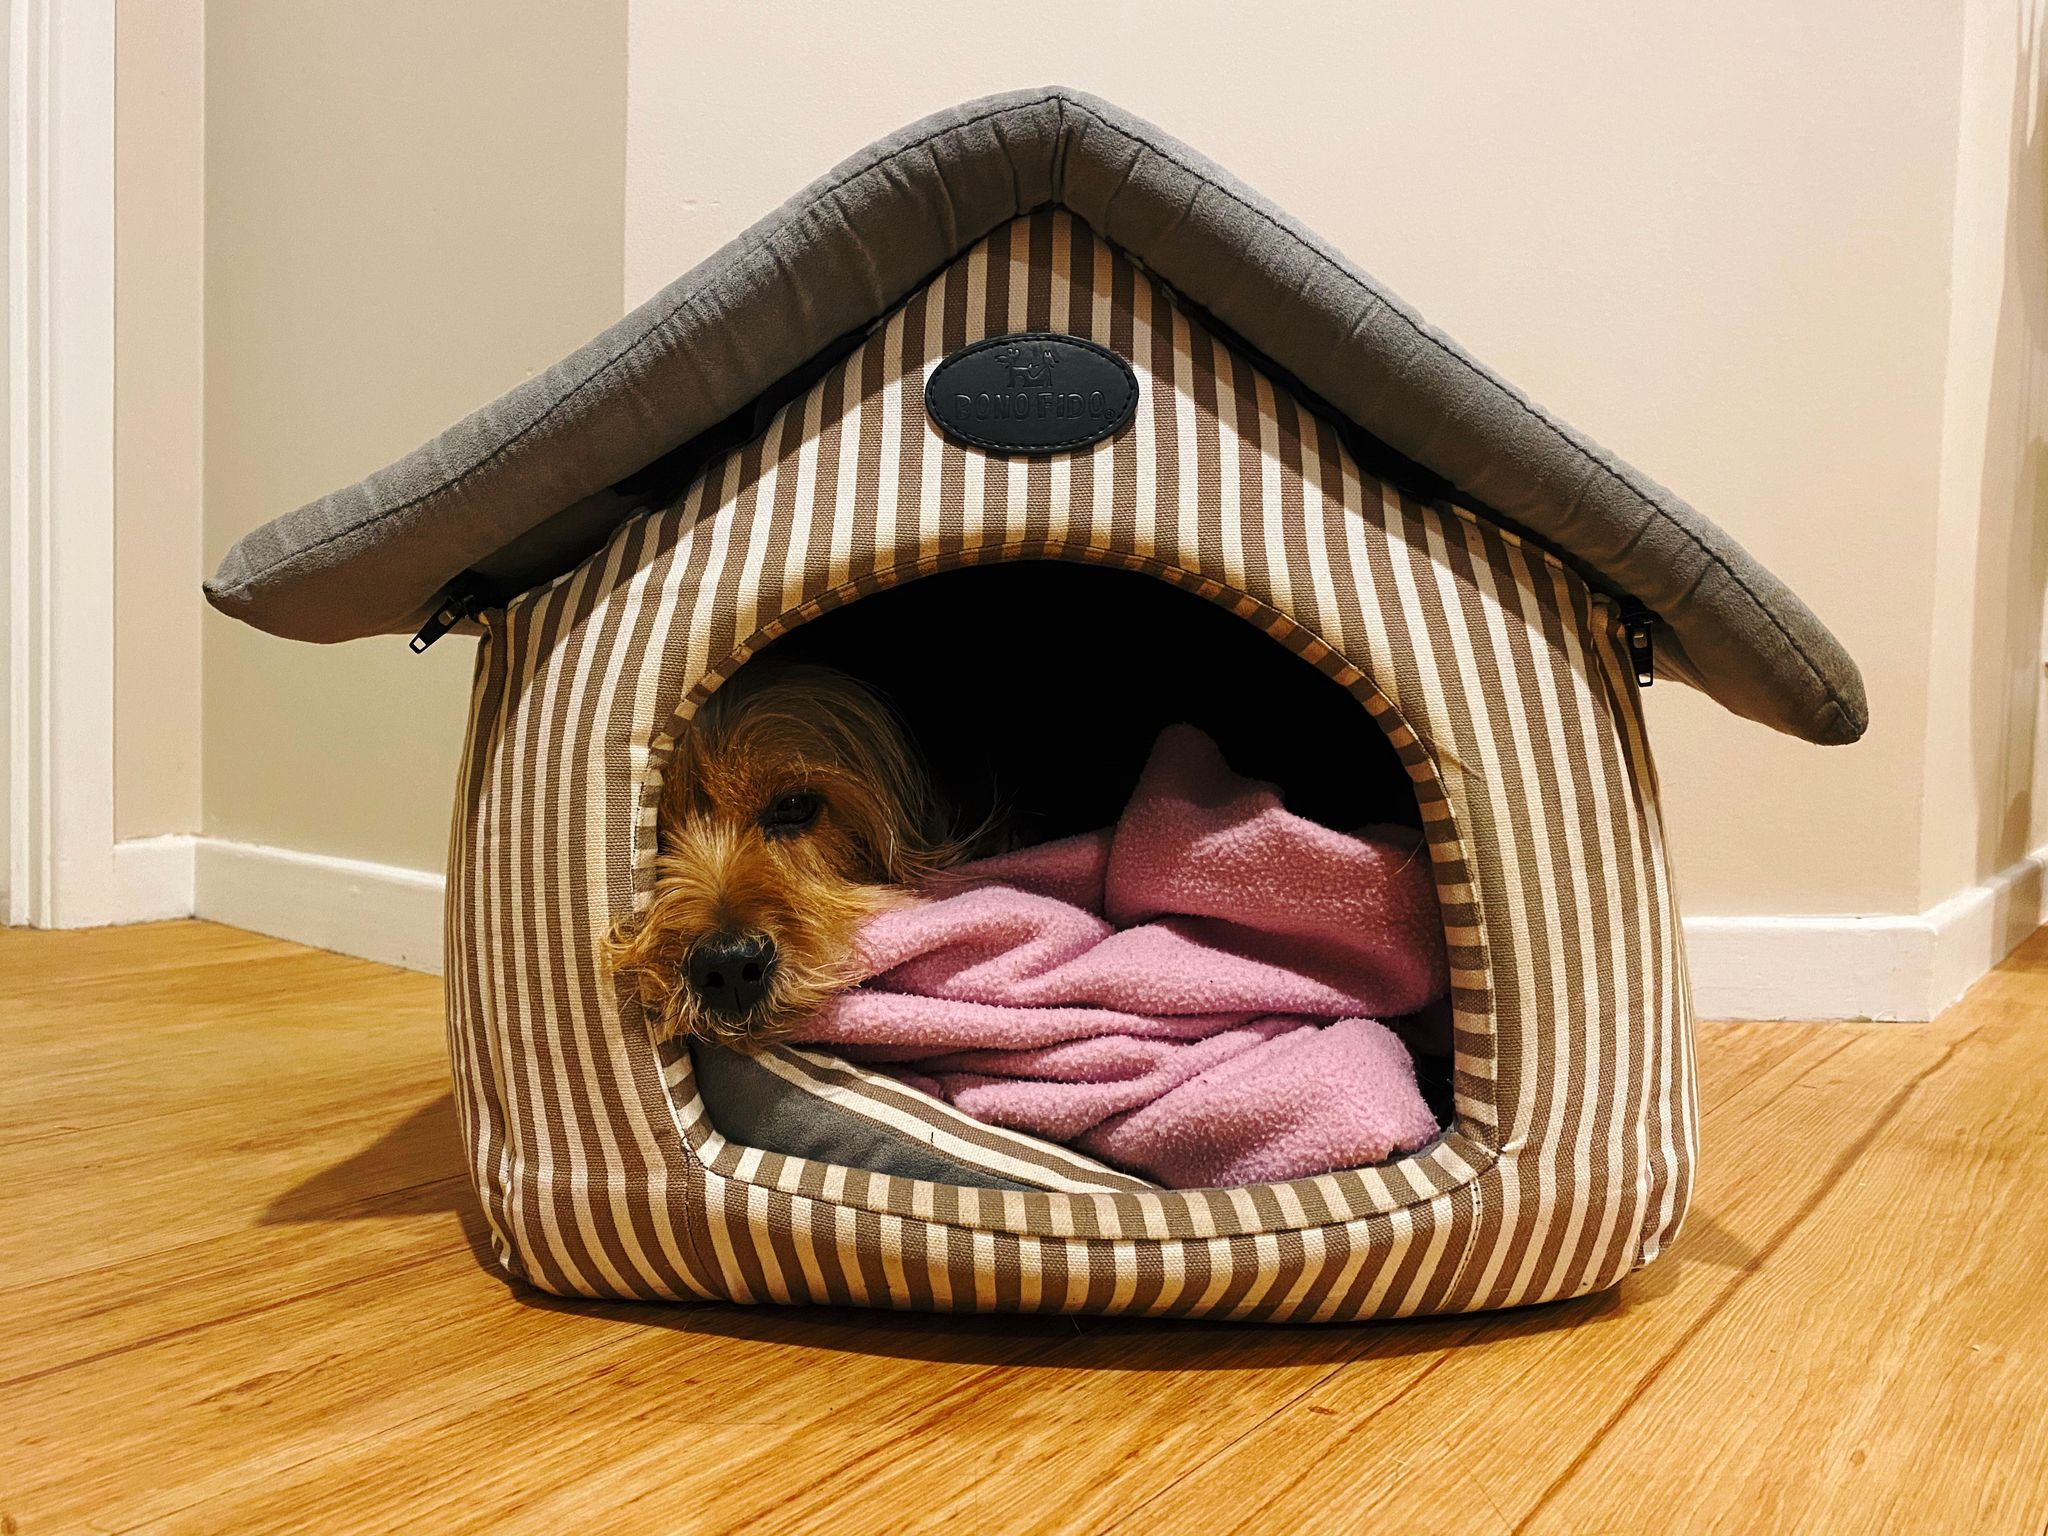 A photo of a small scruffy blonde dog lying half asleep on a pile of blanket inside a dog house that's made from fabric.